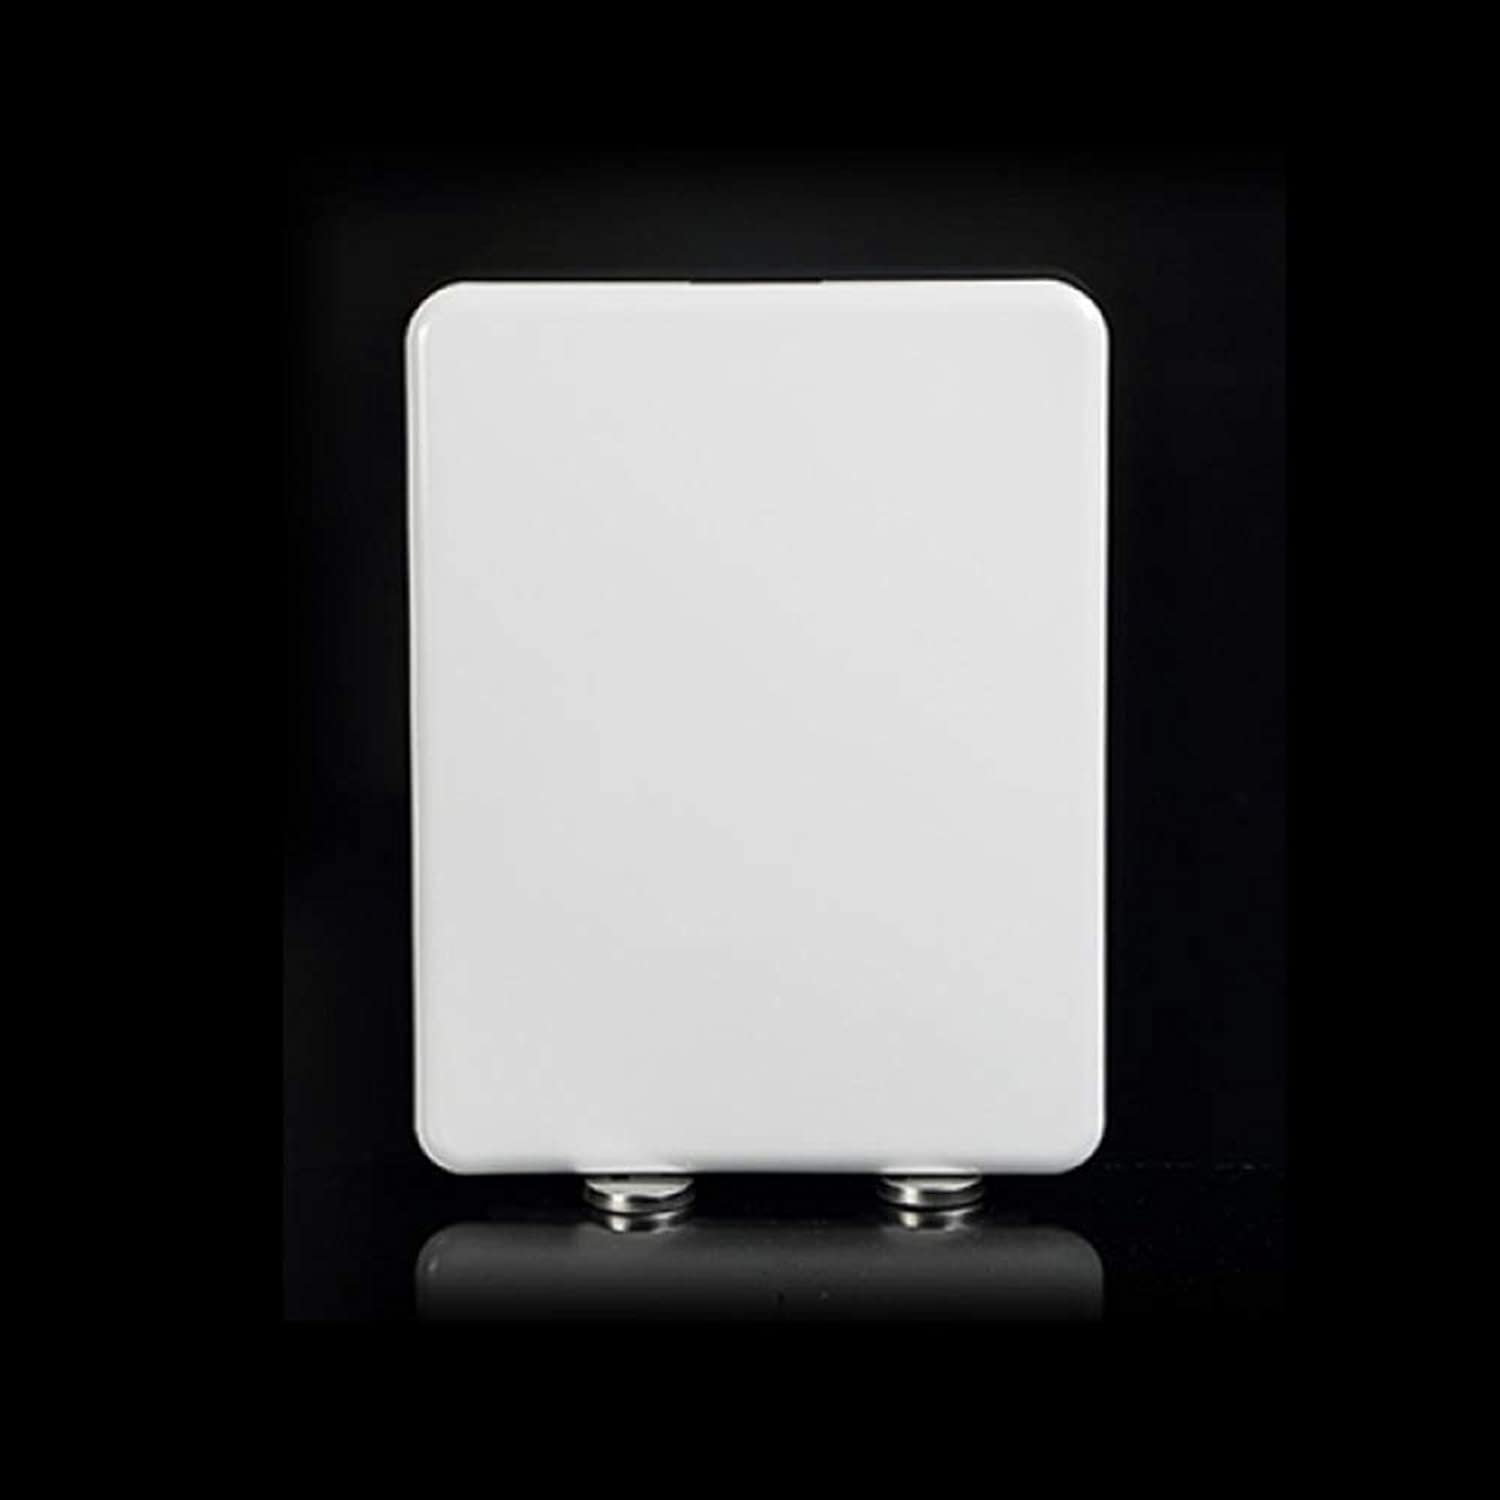 LBRVICTRY Luxury White Square Toilet Seat With Soft Seal And Quick Release Hinge For Family,White-Square